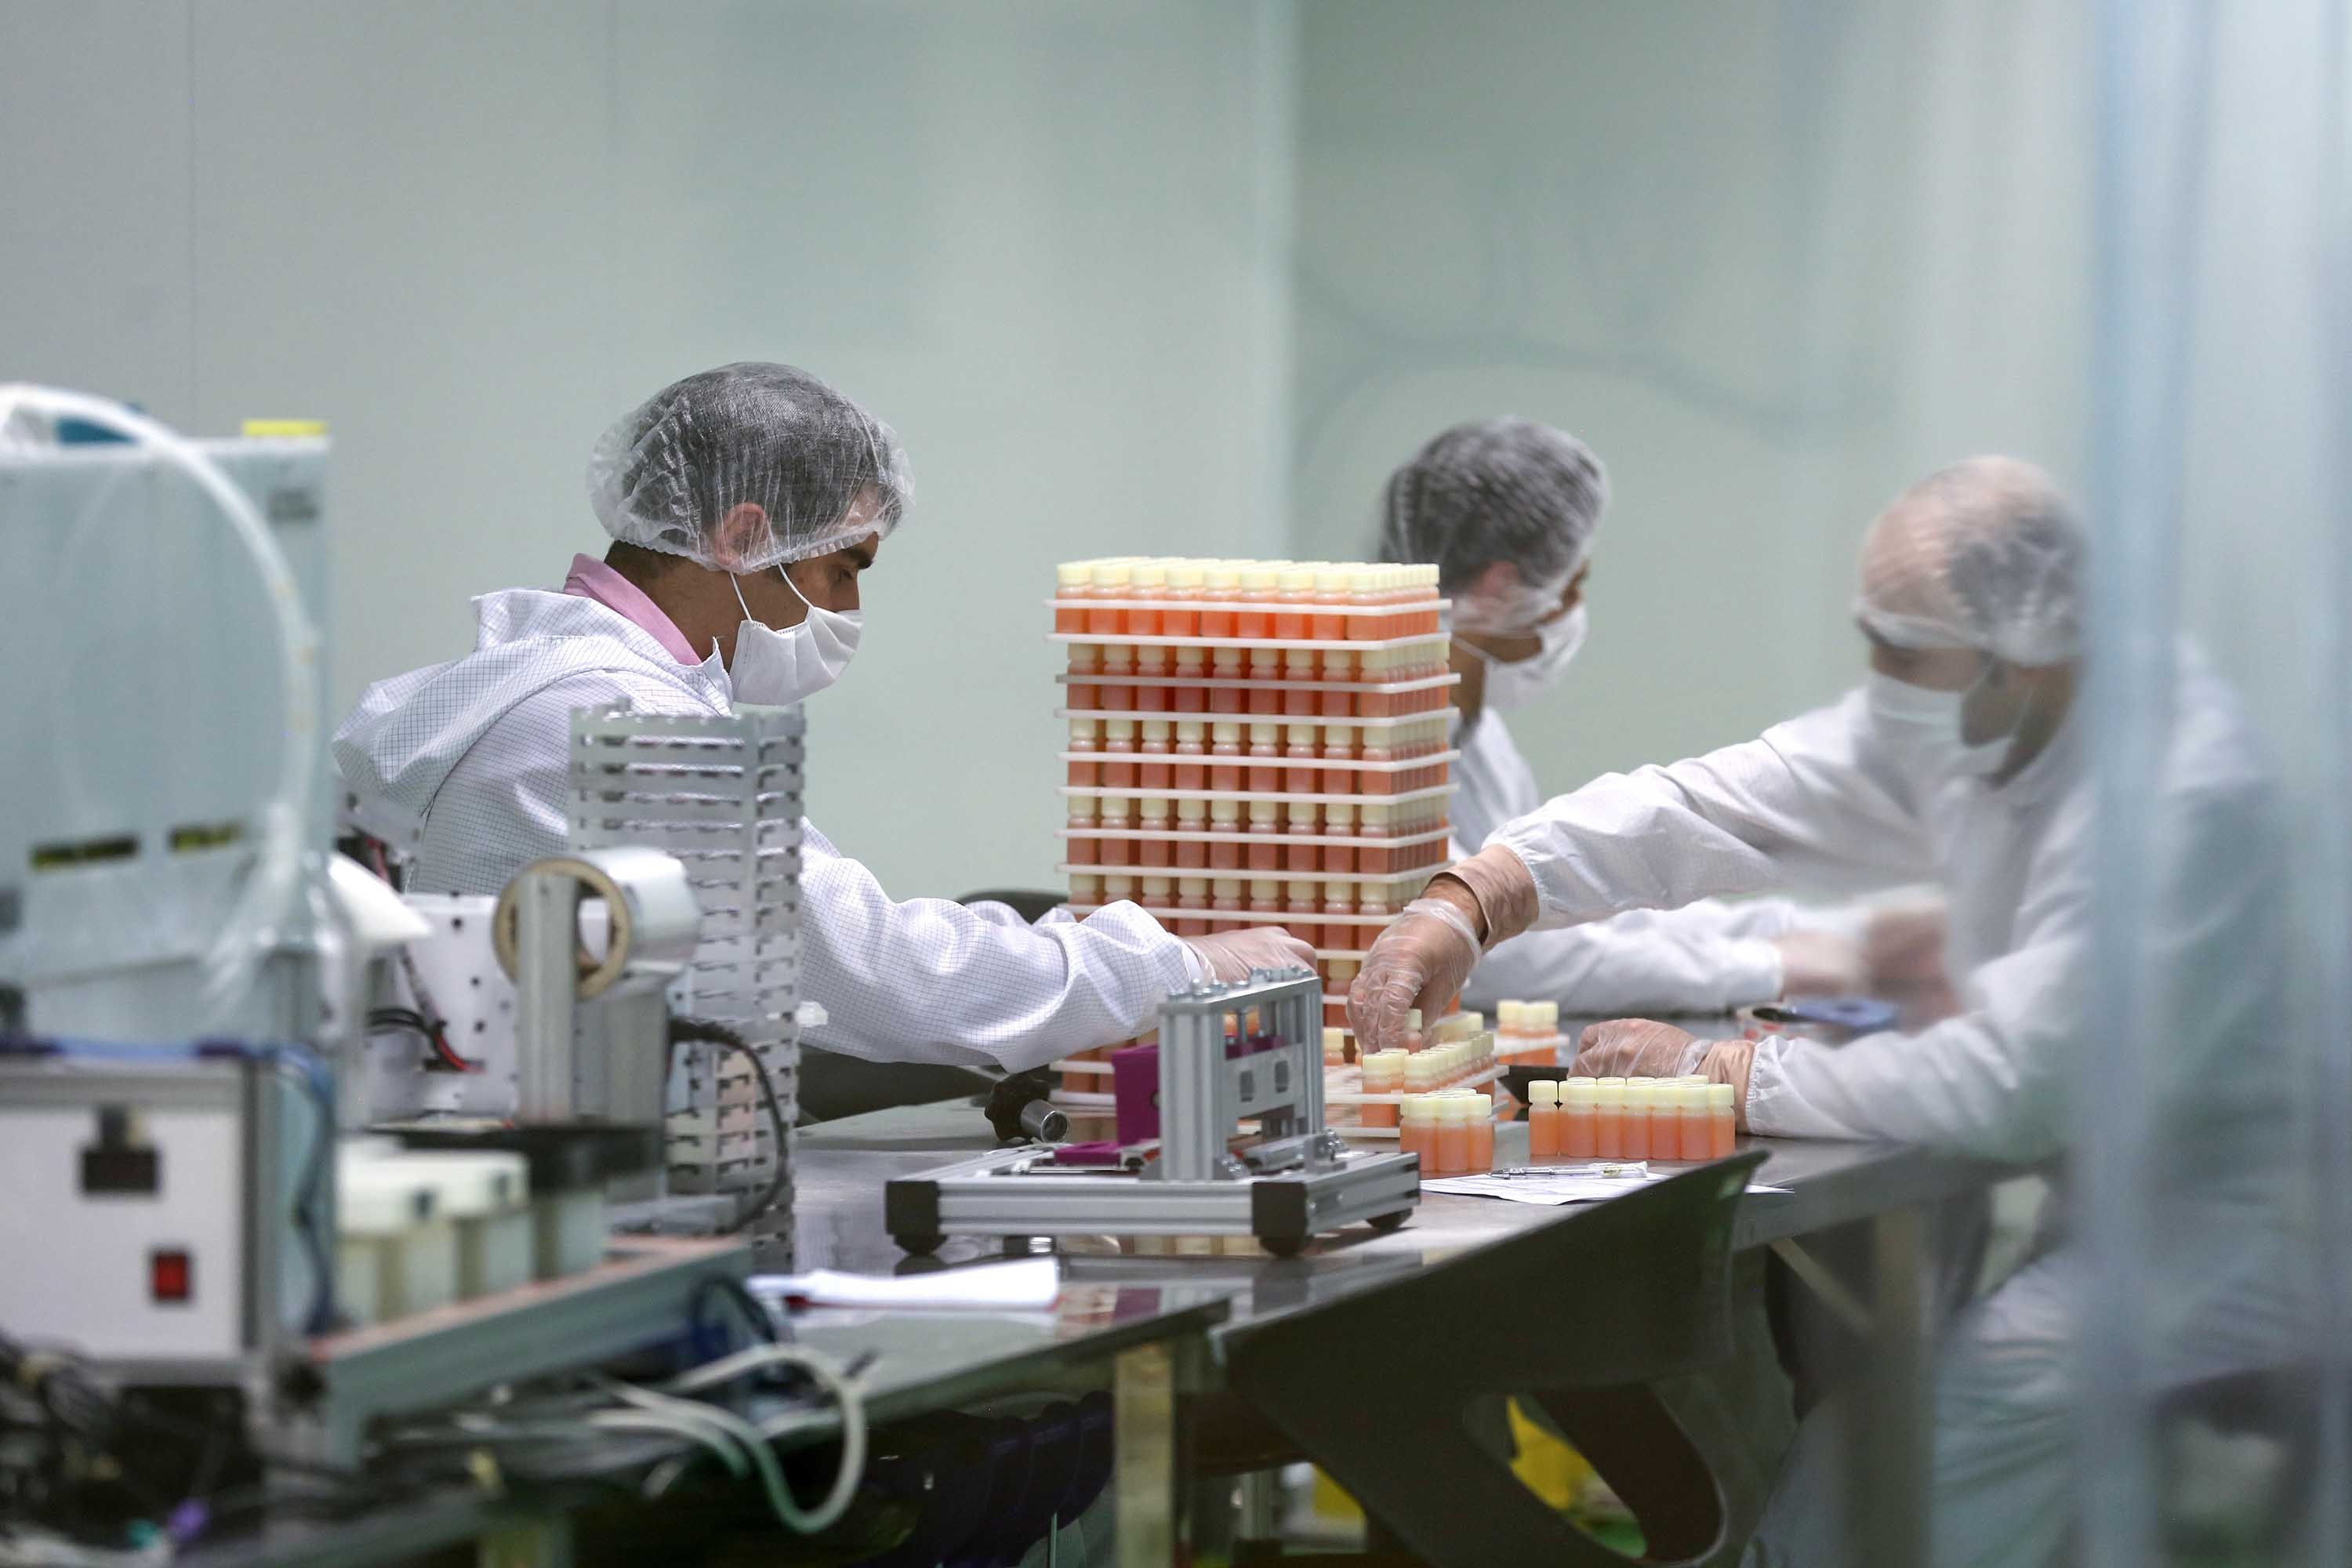 Medical staff work on the production of COVID-19 testing kits in Karaj, Iran, on April 11.